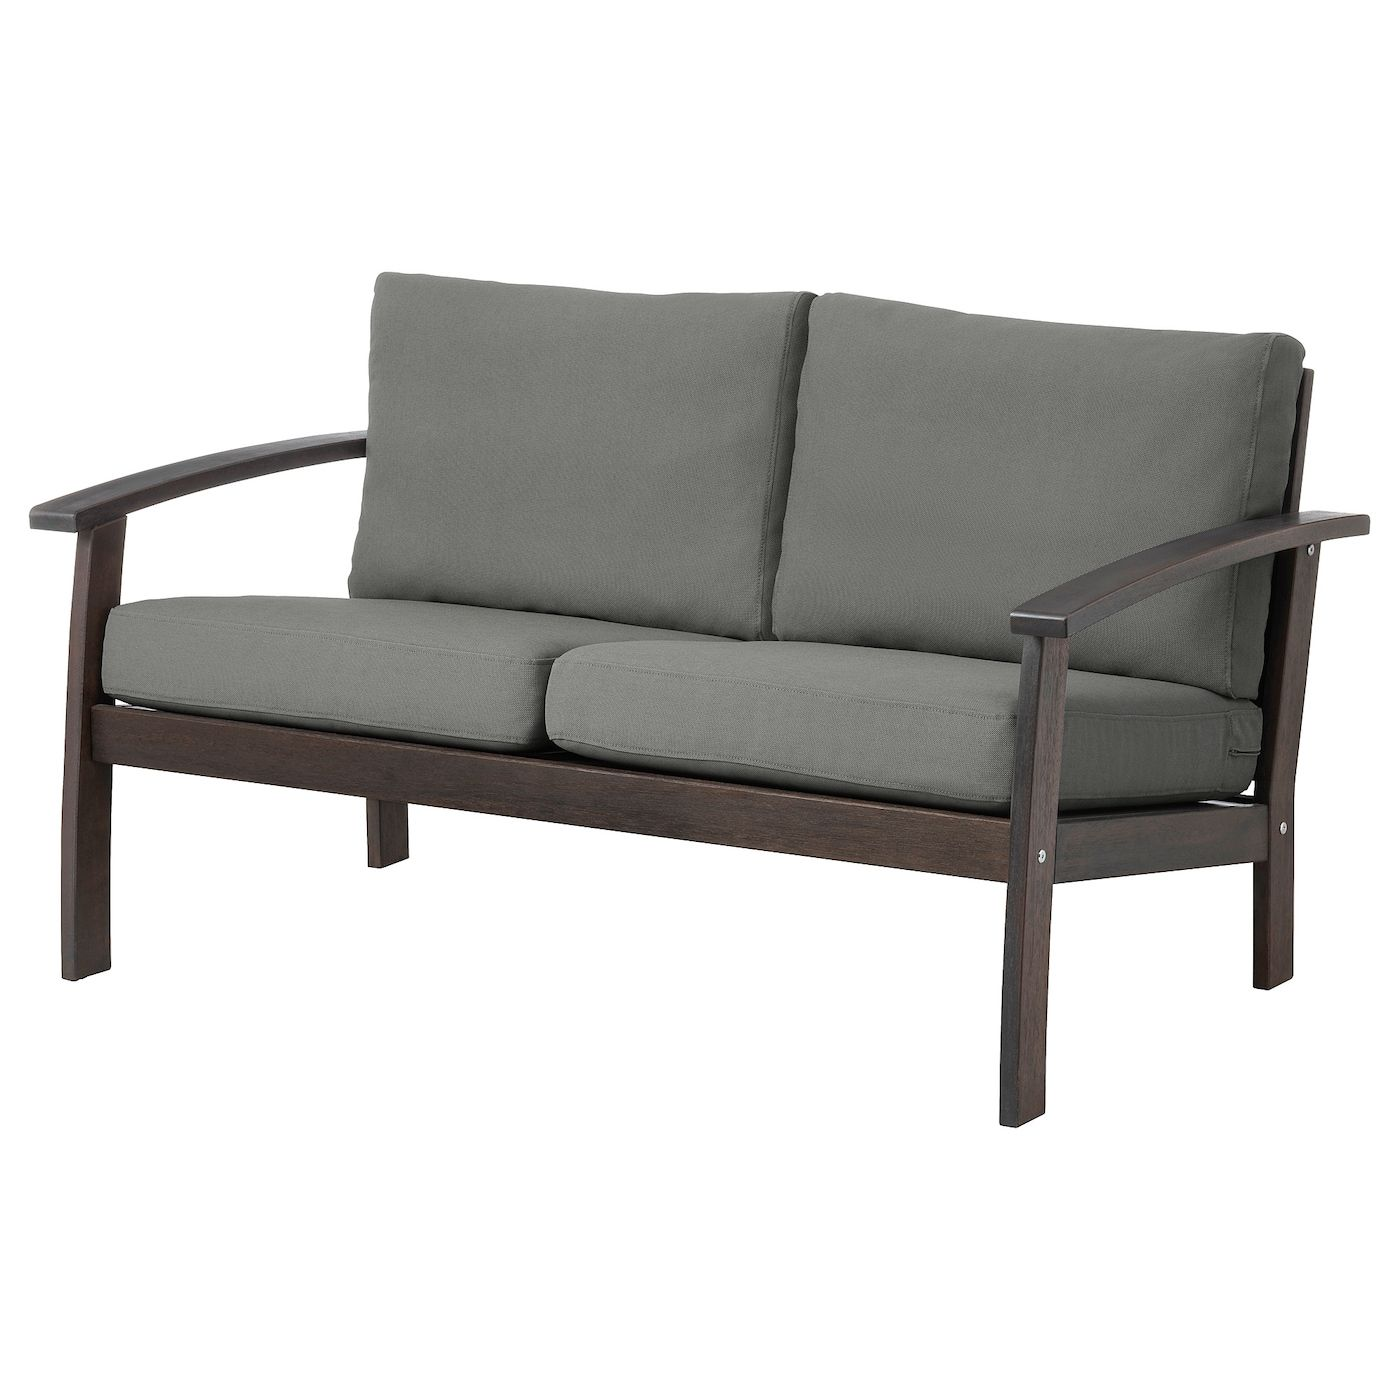 Ikea Hollywoodschaukel KlÖven Loveseat Outdoor Brown Stained Frösön Duvholmen Dark